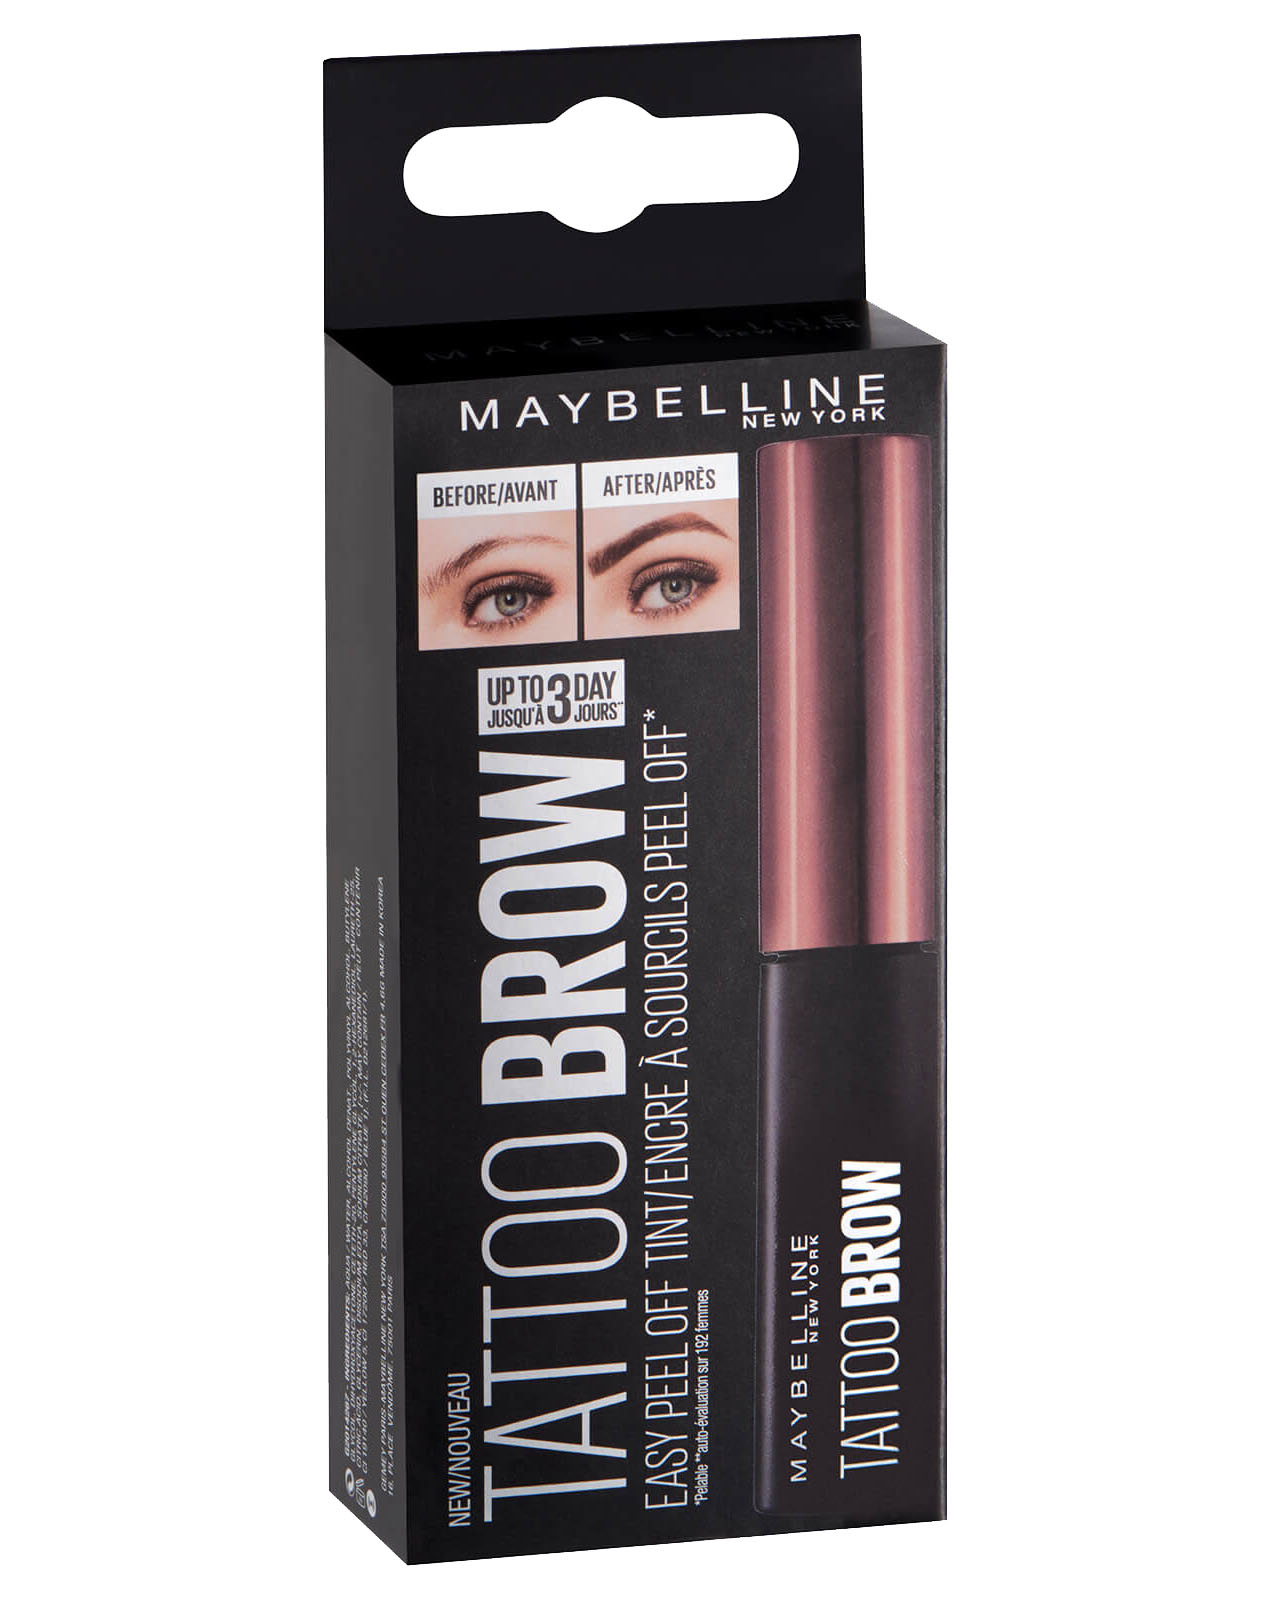 Maybelline Tattoo Brow Tint